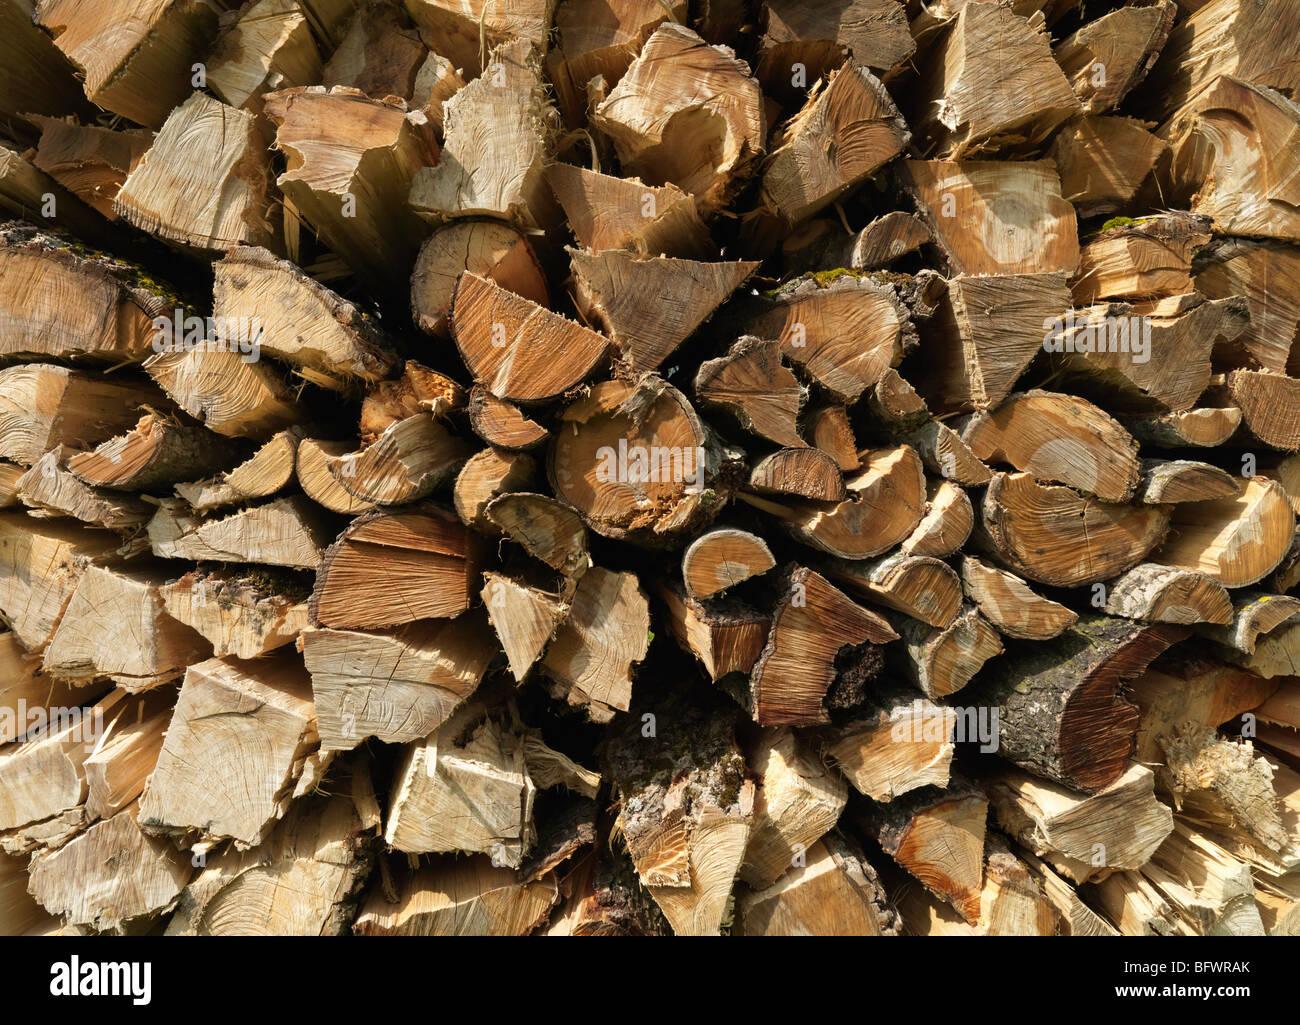 Stack of wooden logs - Stock Image